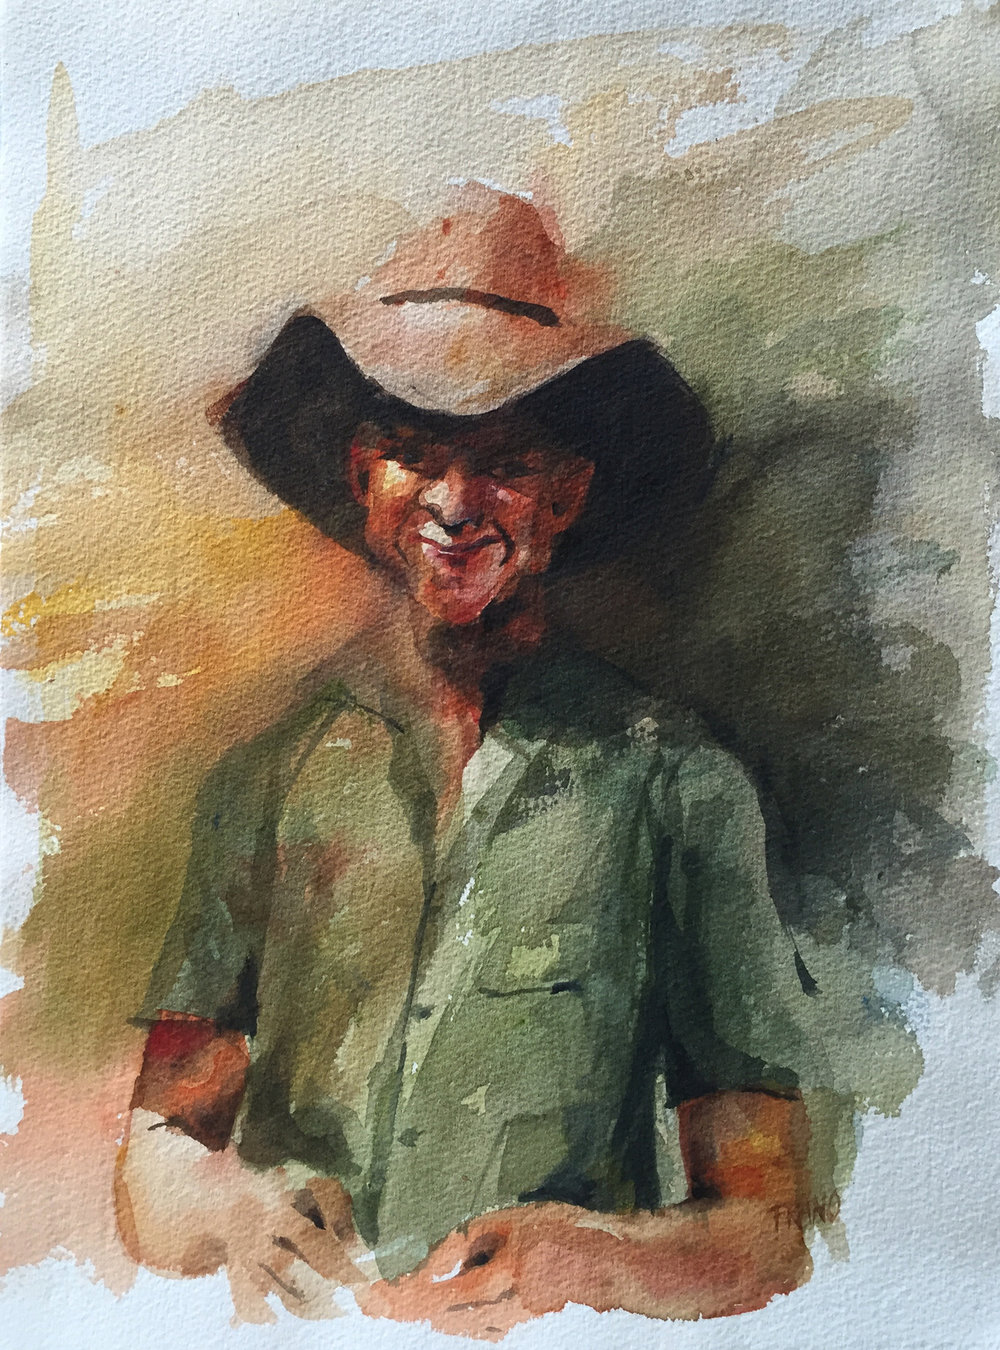 Farmer-Water-Colour-Painting-by-Frano.jpg